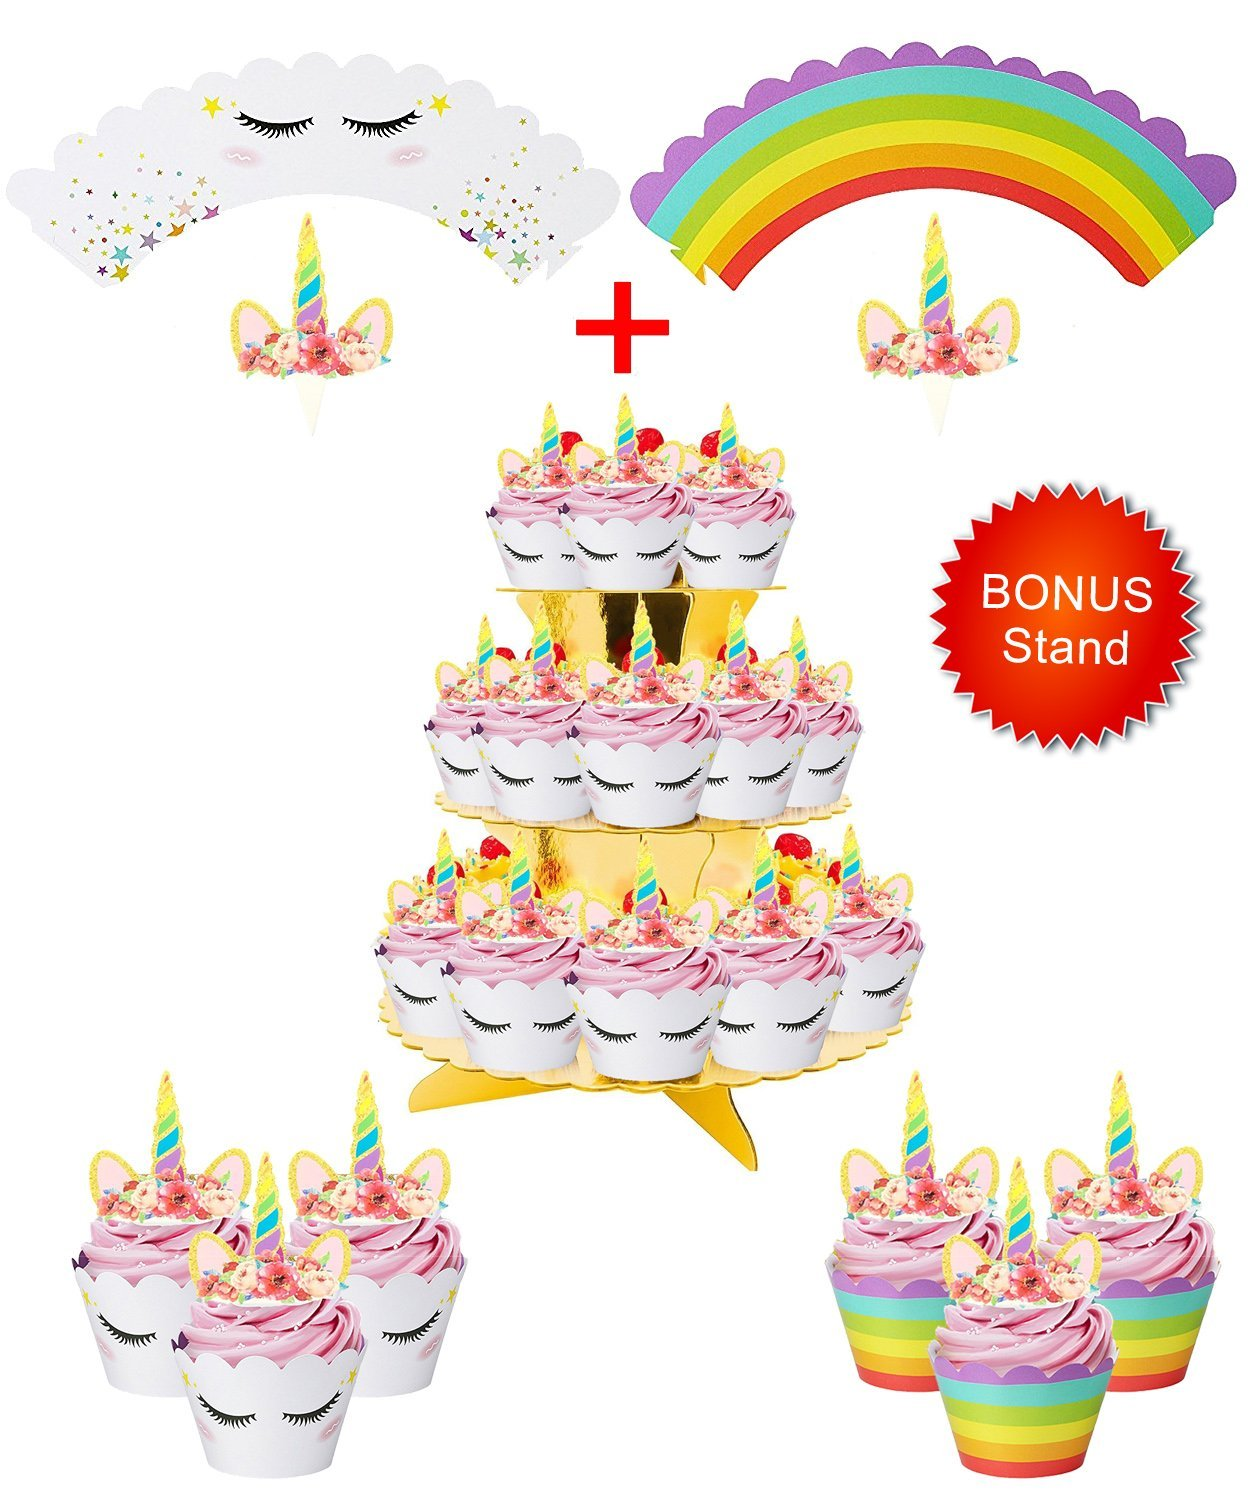 Rainbow Unicorn Cupcake Toppers and Wrappers w BONUS Gold Cupcake Stand - Themed Glitter Horn Cake Topper + Rainbow Wrapper DIY Baking Decorations Kit, Kids Birthday Party Supplies Accessories| 48pcs by Quality Party Supplies (Image #1)